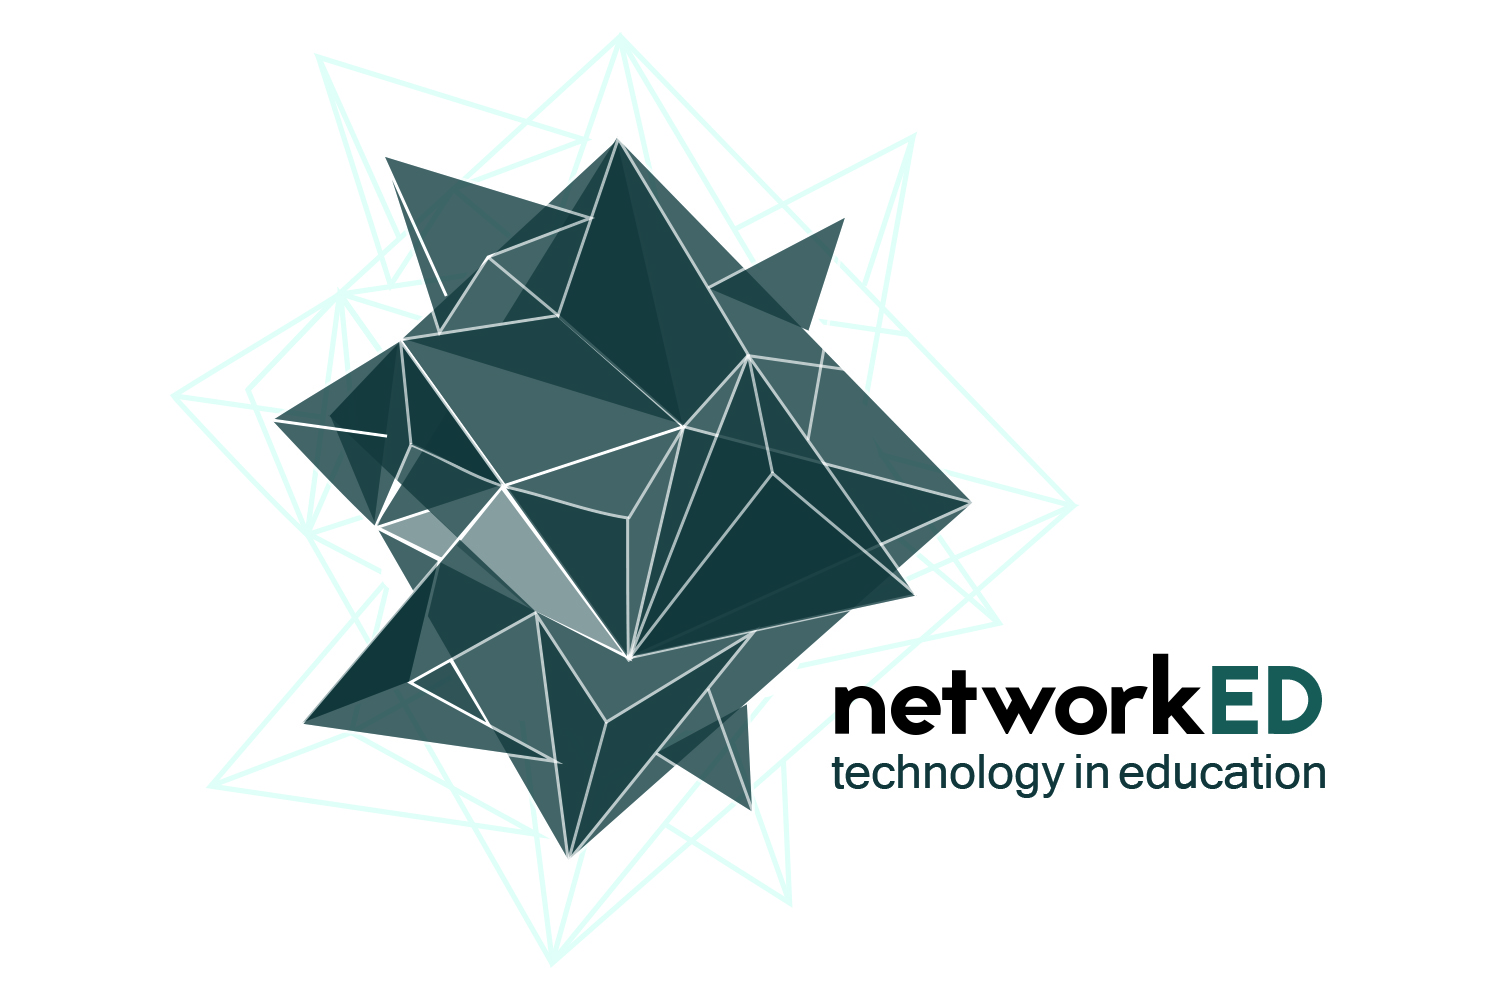 NetworkED - James Clay - 9th March 2016